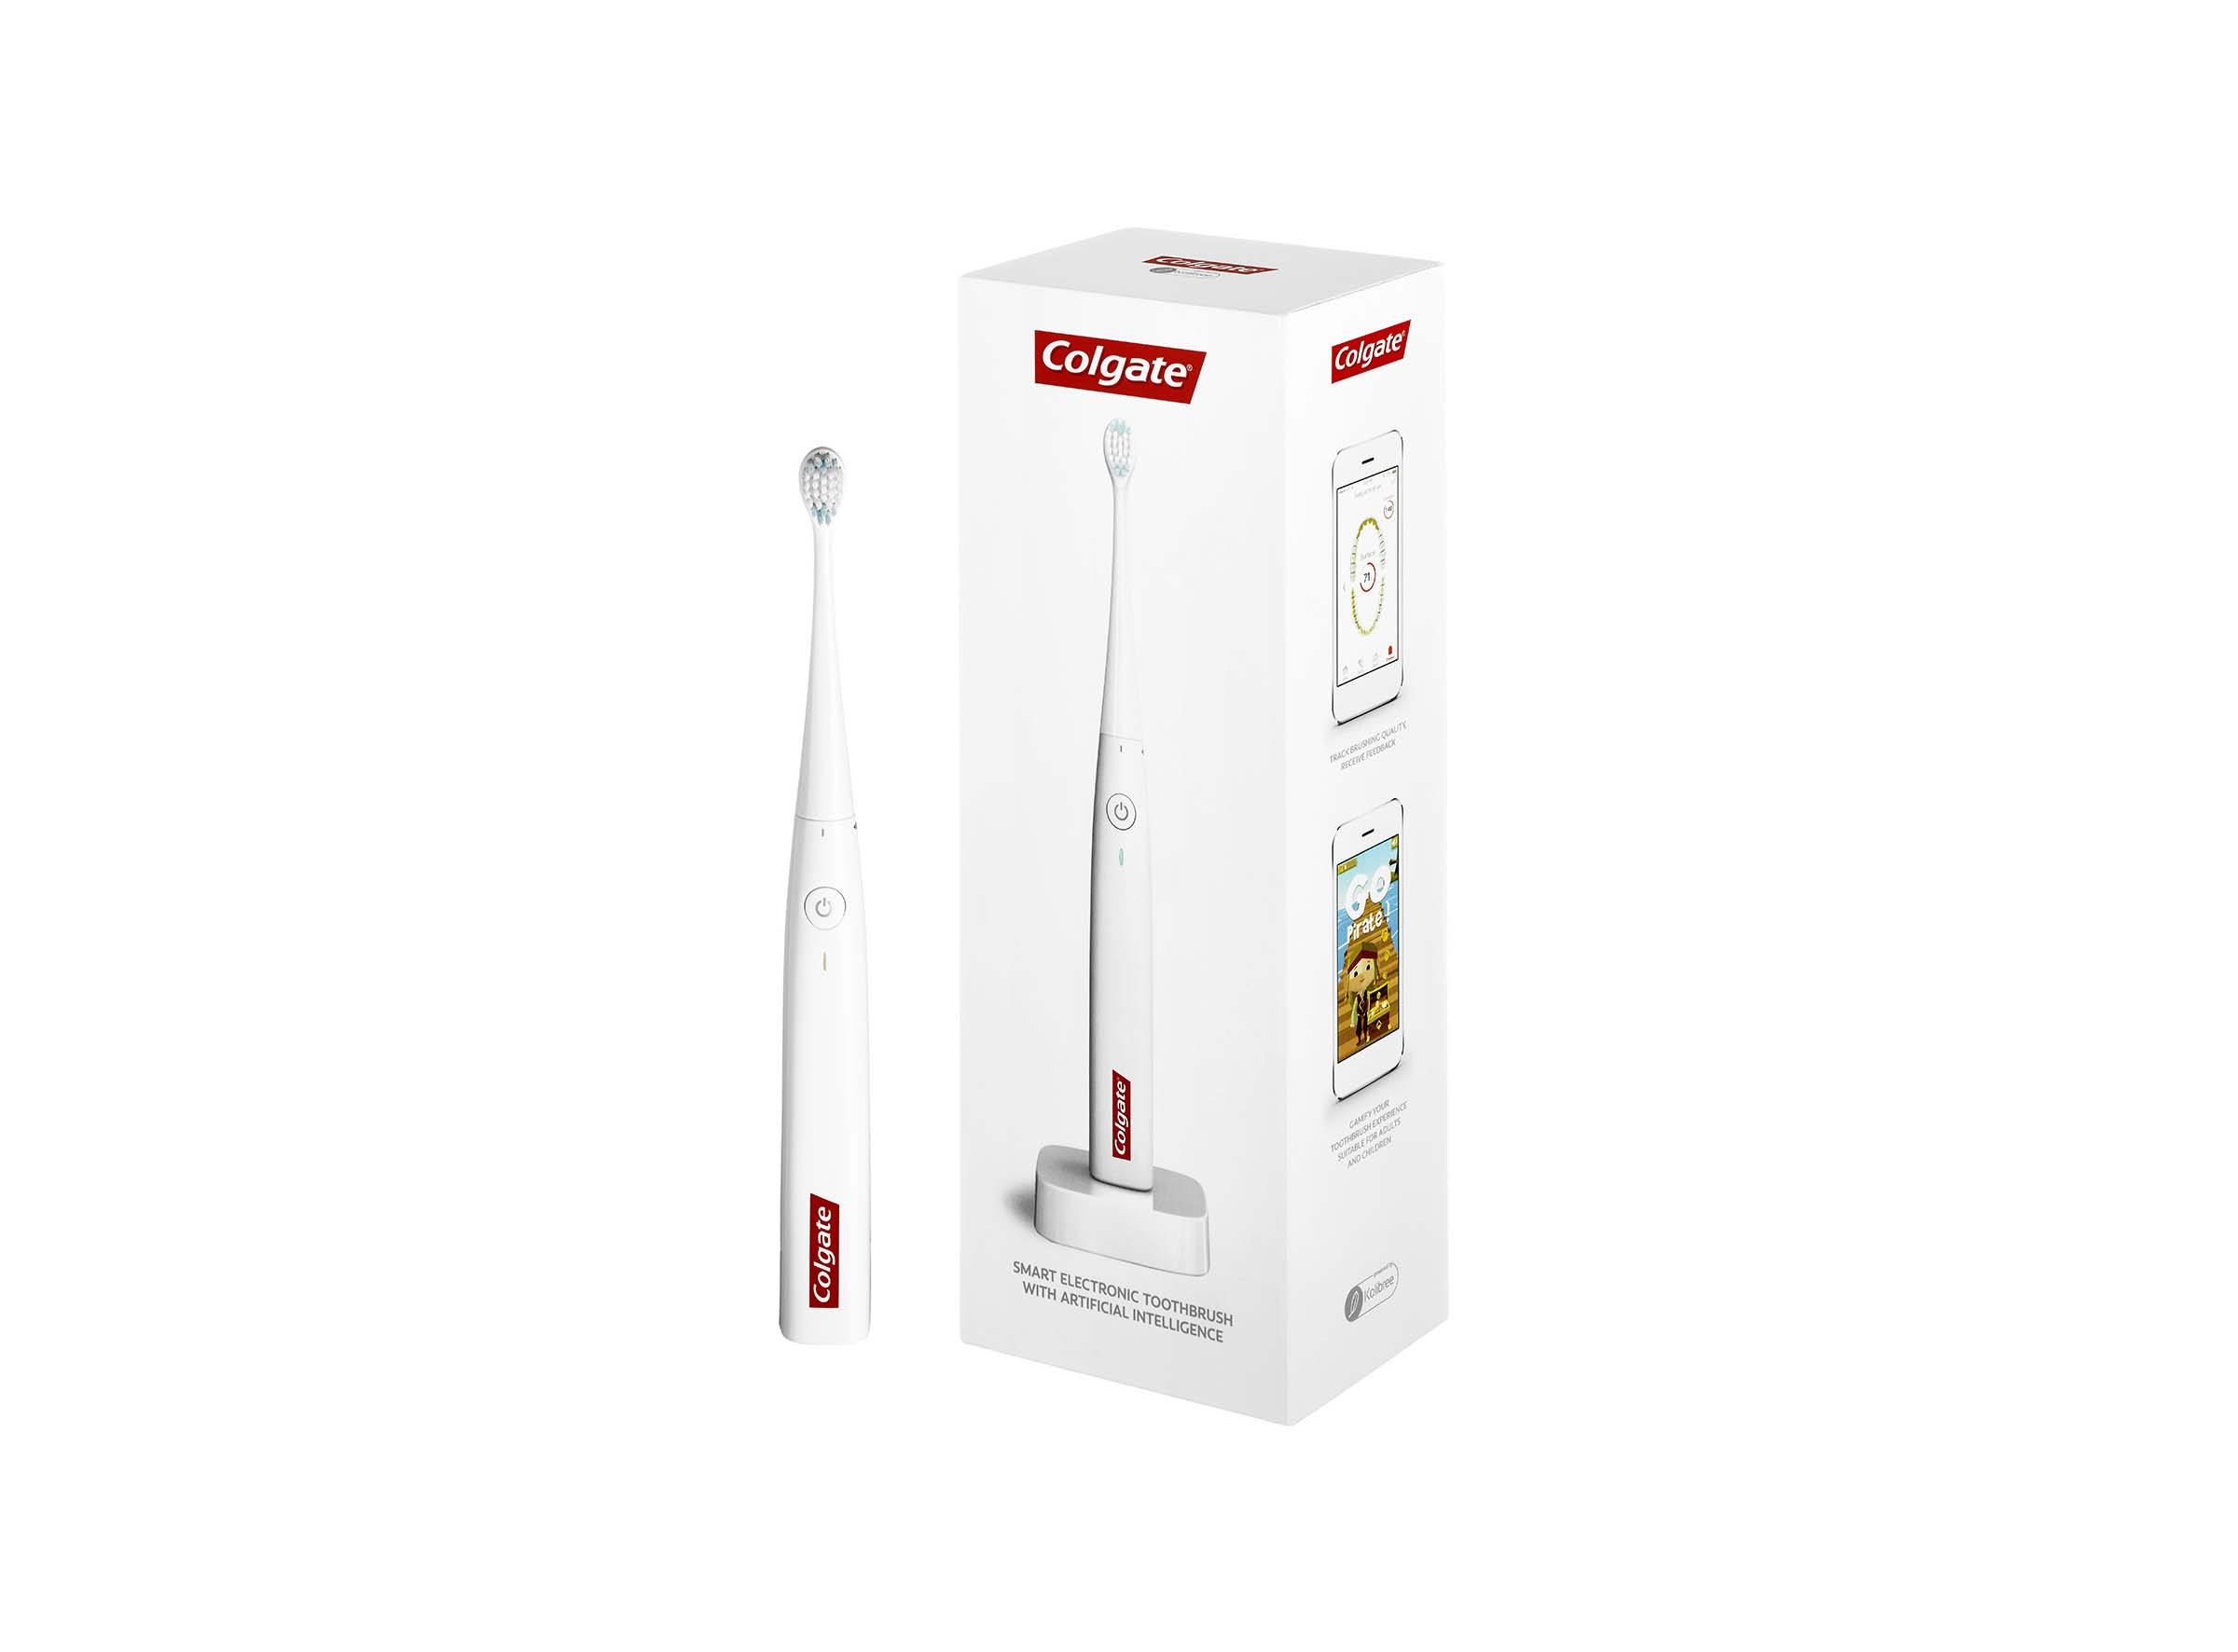 Colgate® Smart Electronic Toothbrush E1 with Artificial Intelligence